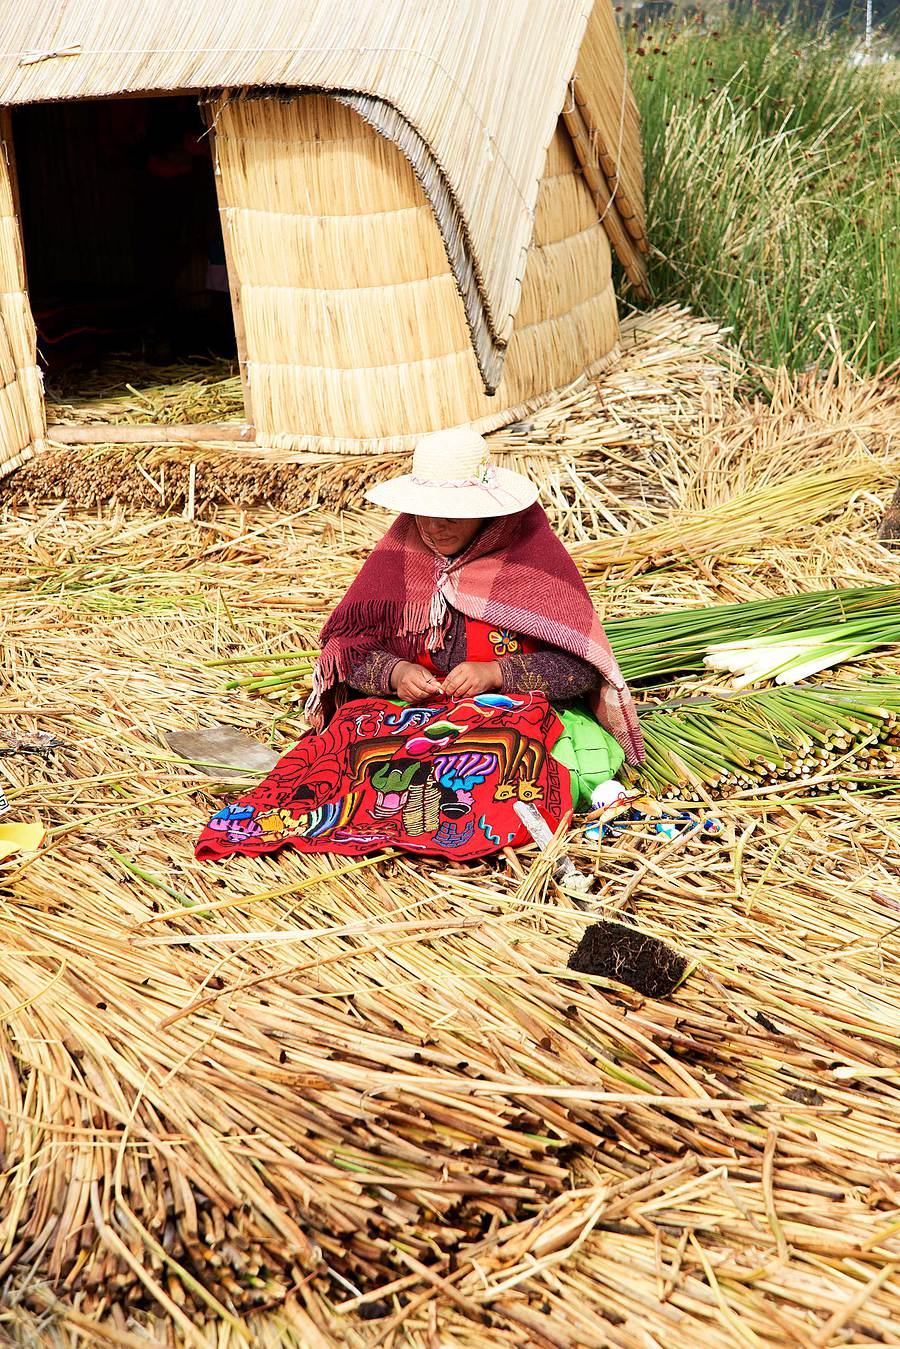 Traditionally dressed woman, floating island, Lake Titicaca, Peru / Photography by Jerome Razoir / Uploaded 5th June 2015 @ 04:09 PM